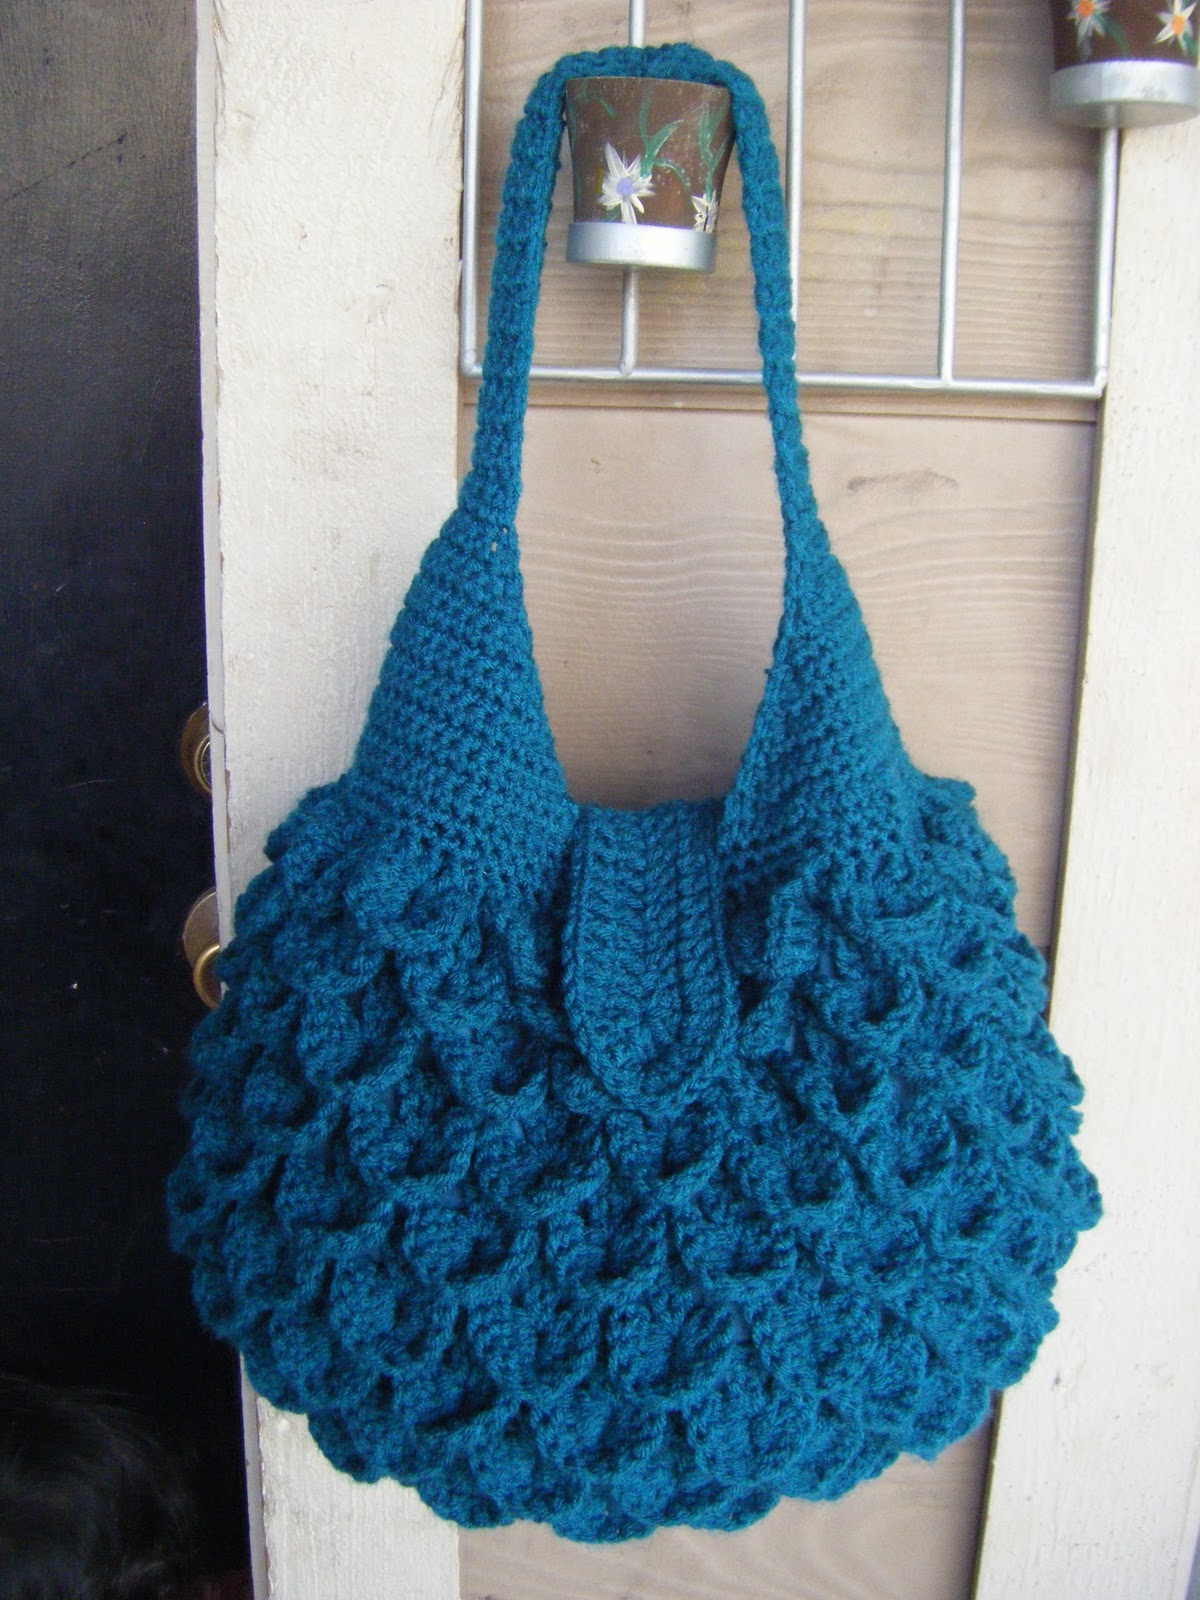 Crochet Purse Ideas : Free Thread Crochet Purse Pattern Learn to Crochet